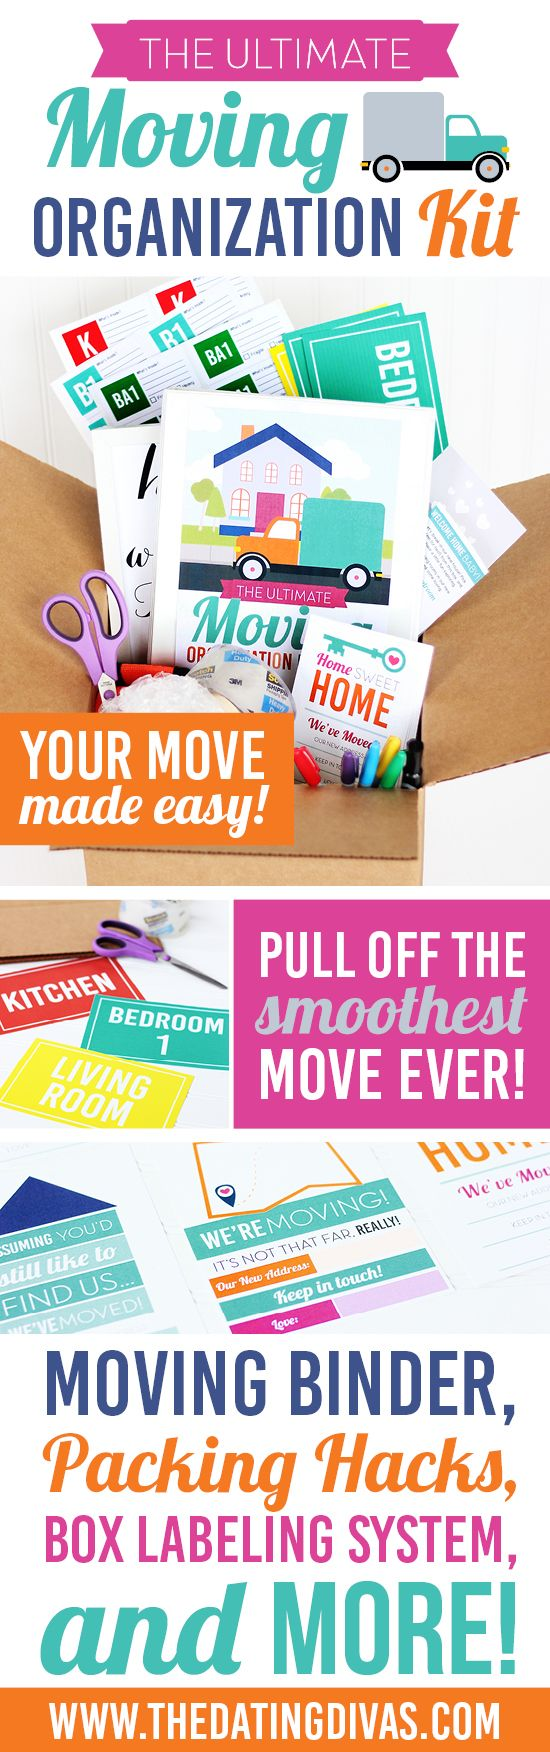 As Divas, we've moved more than our fair share of times, so we've put our heads together to come up with ways to solve some of the hassles and headaches of moving. Our Moving Organization Kit is stuffed full of moving timelines, checklists, packing hacks, and MORE to make your next move easier than ever, so you can spend your time looking forward to relaxing in your new digs!